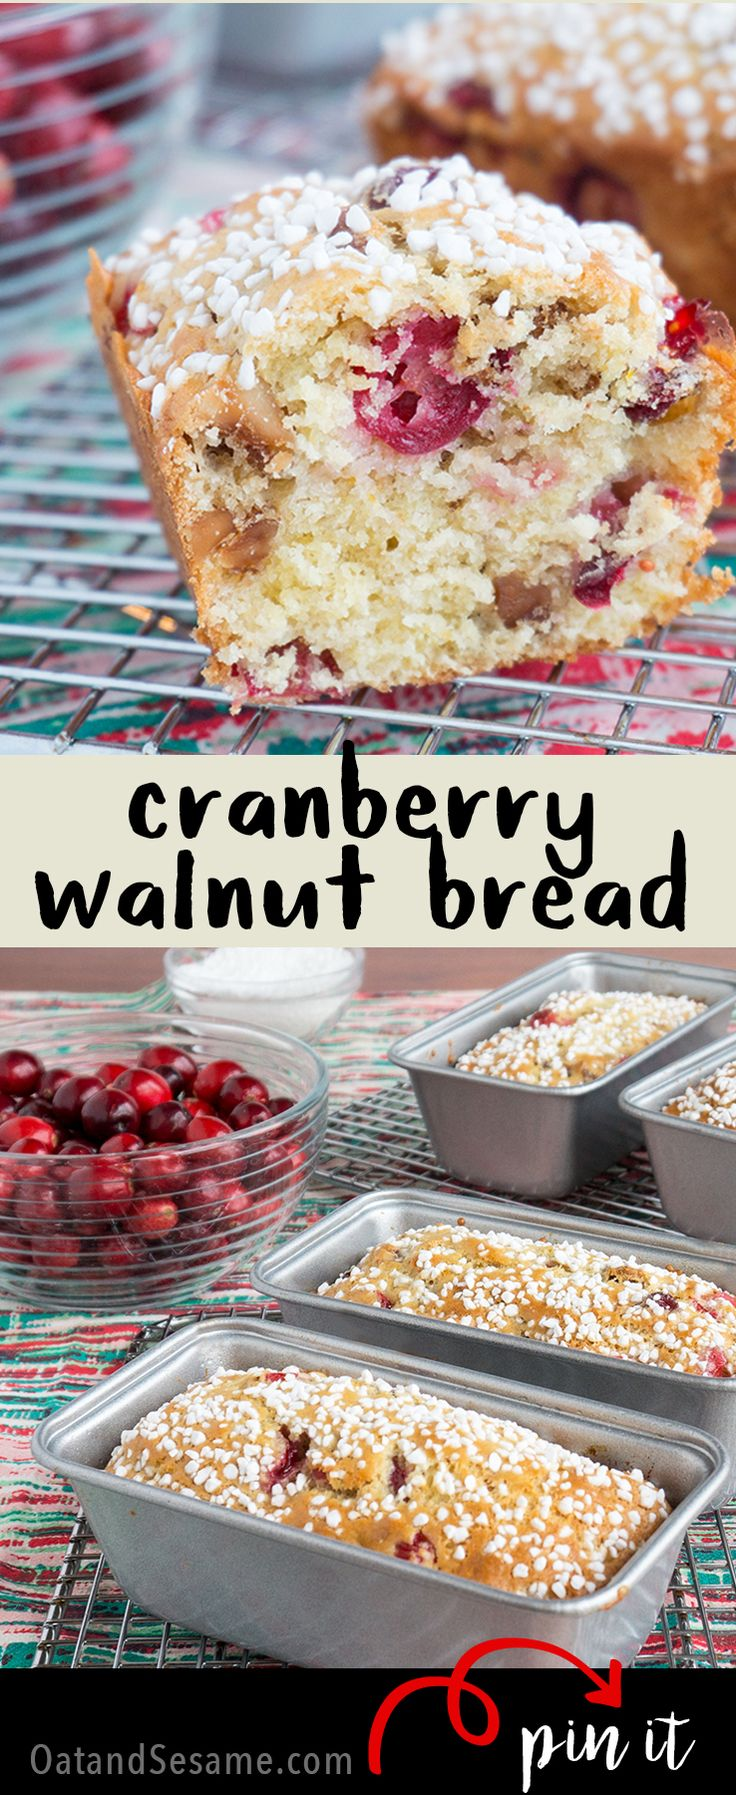 A festive holiday quick bread! Perfect for gifting!  Cranberry Walnut Bread is sweet, tart and delicious!